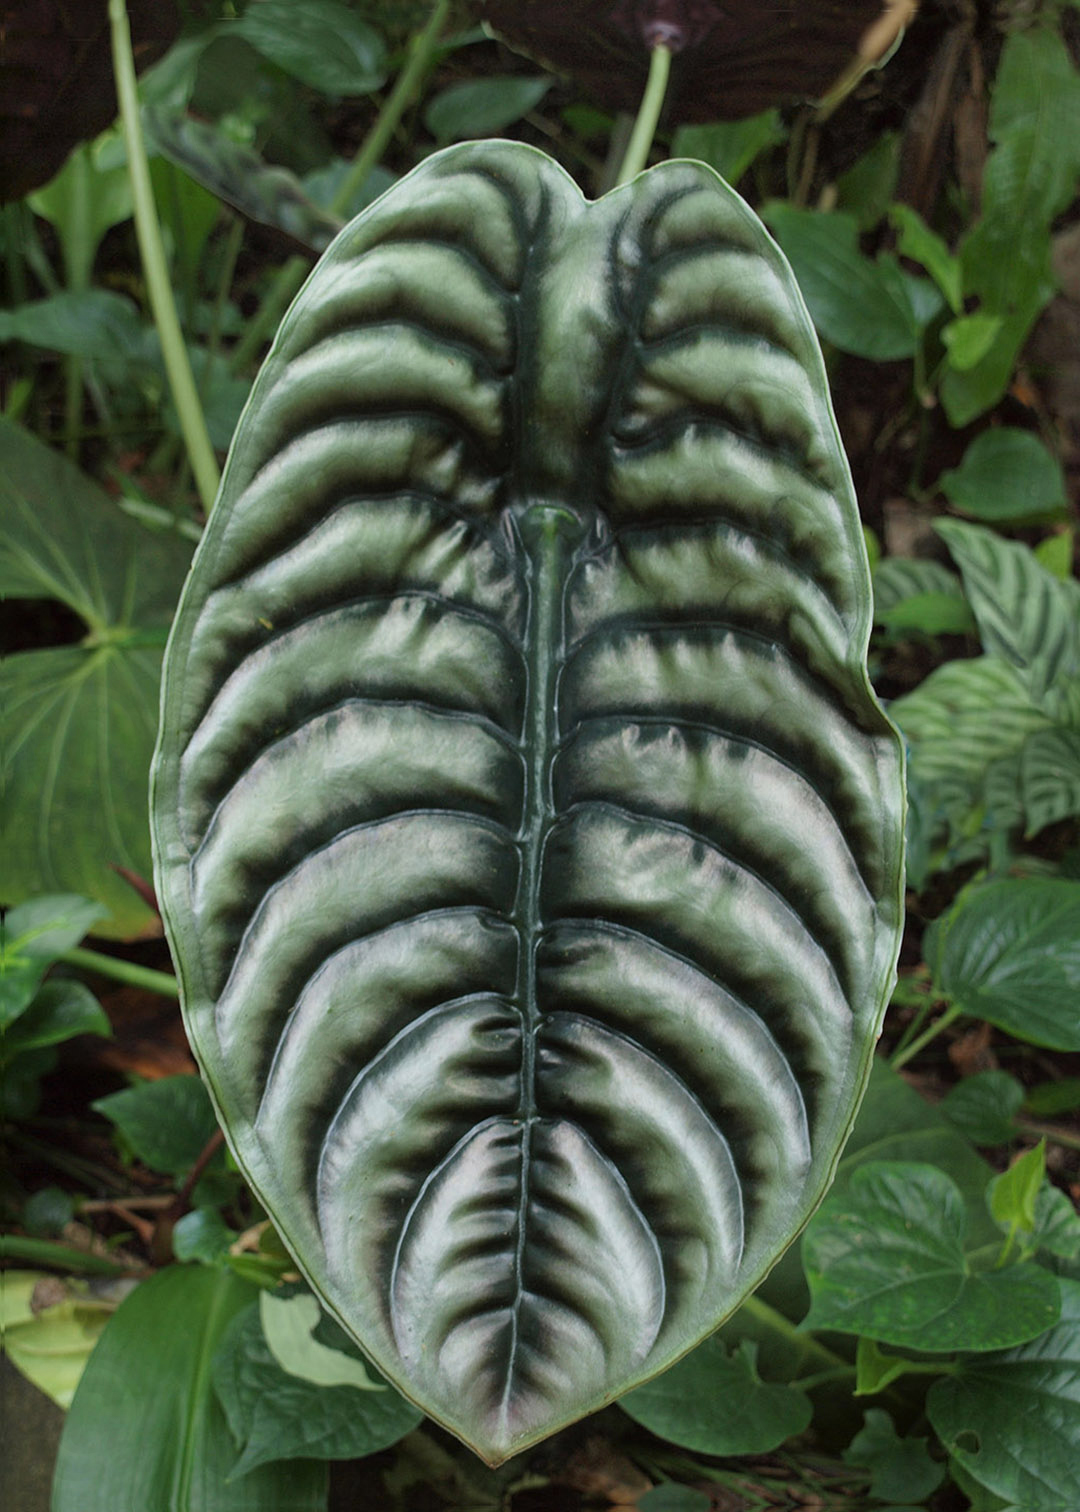 Silver Elephant Ear - photograph by Gail Russell